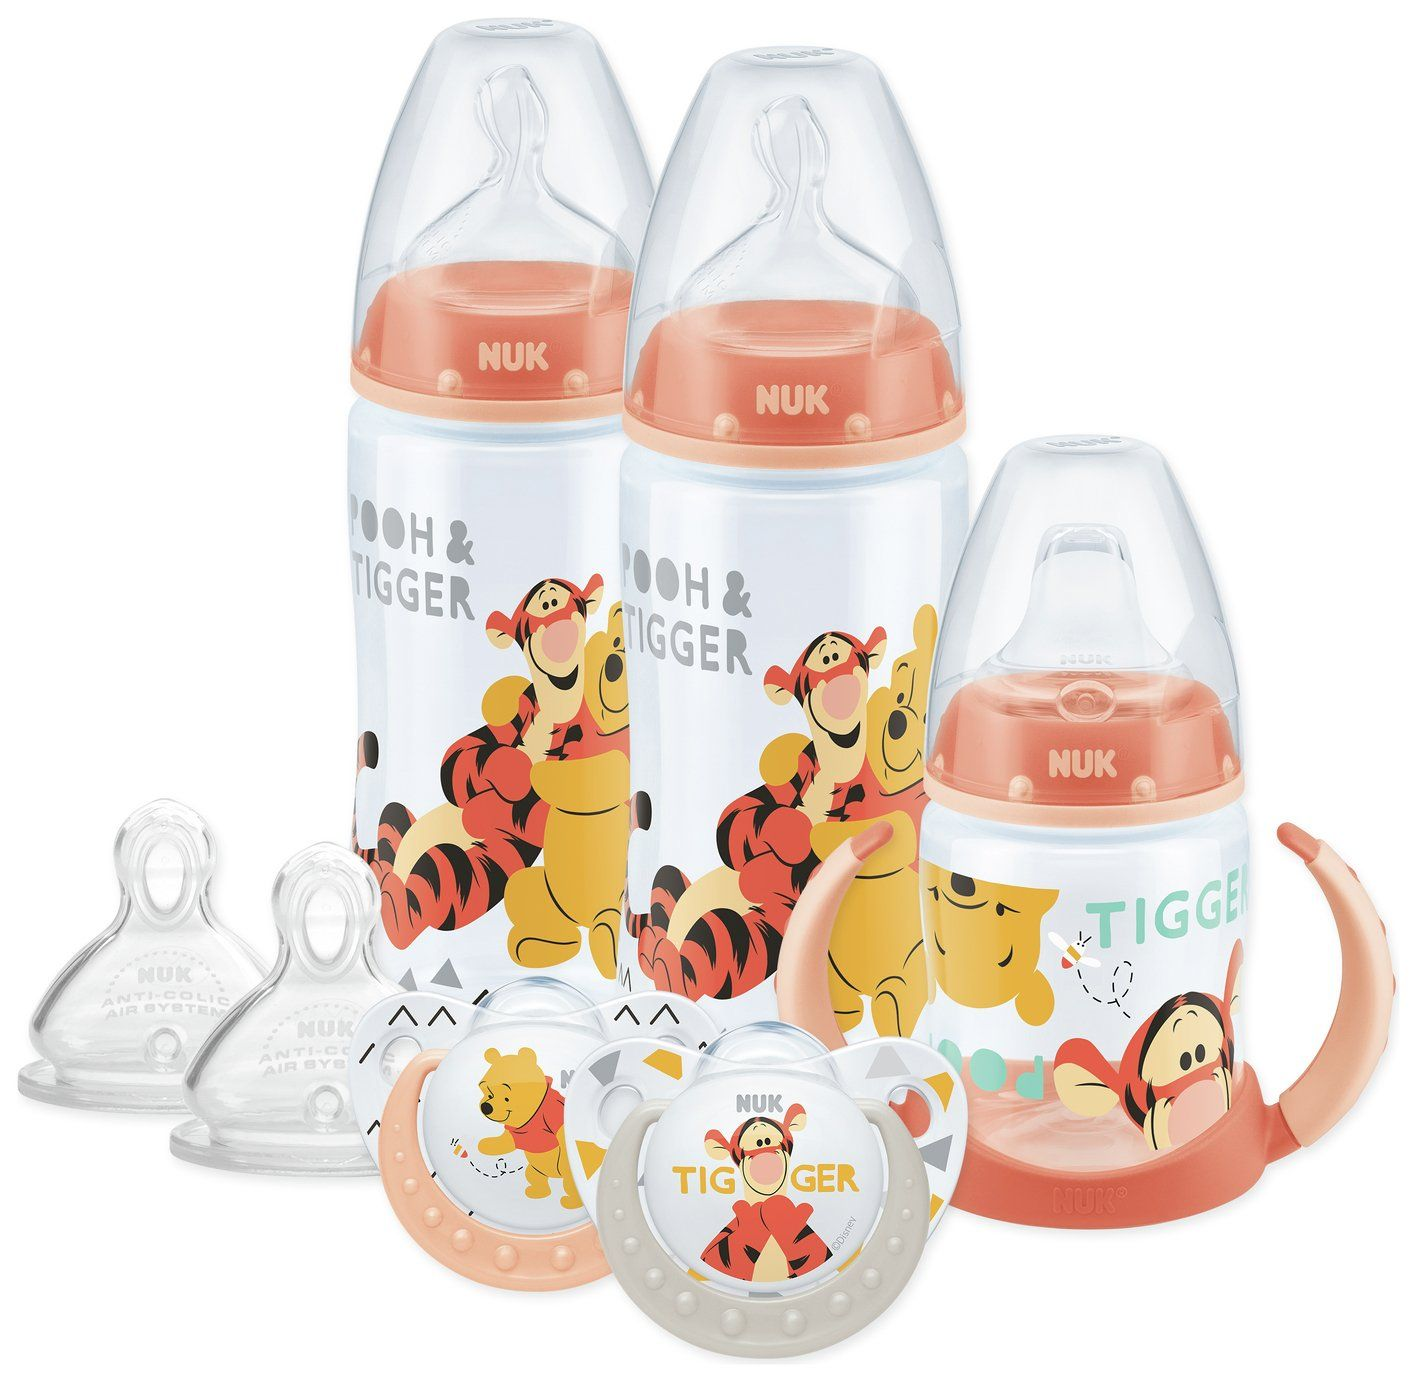 NUK Winnie the Pooh Silicone Soothers 2pk 0-6 Months colour and design may vary